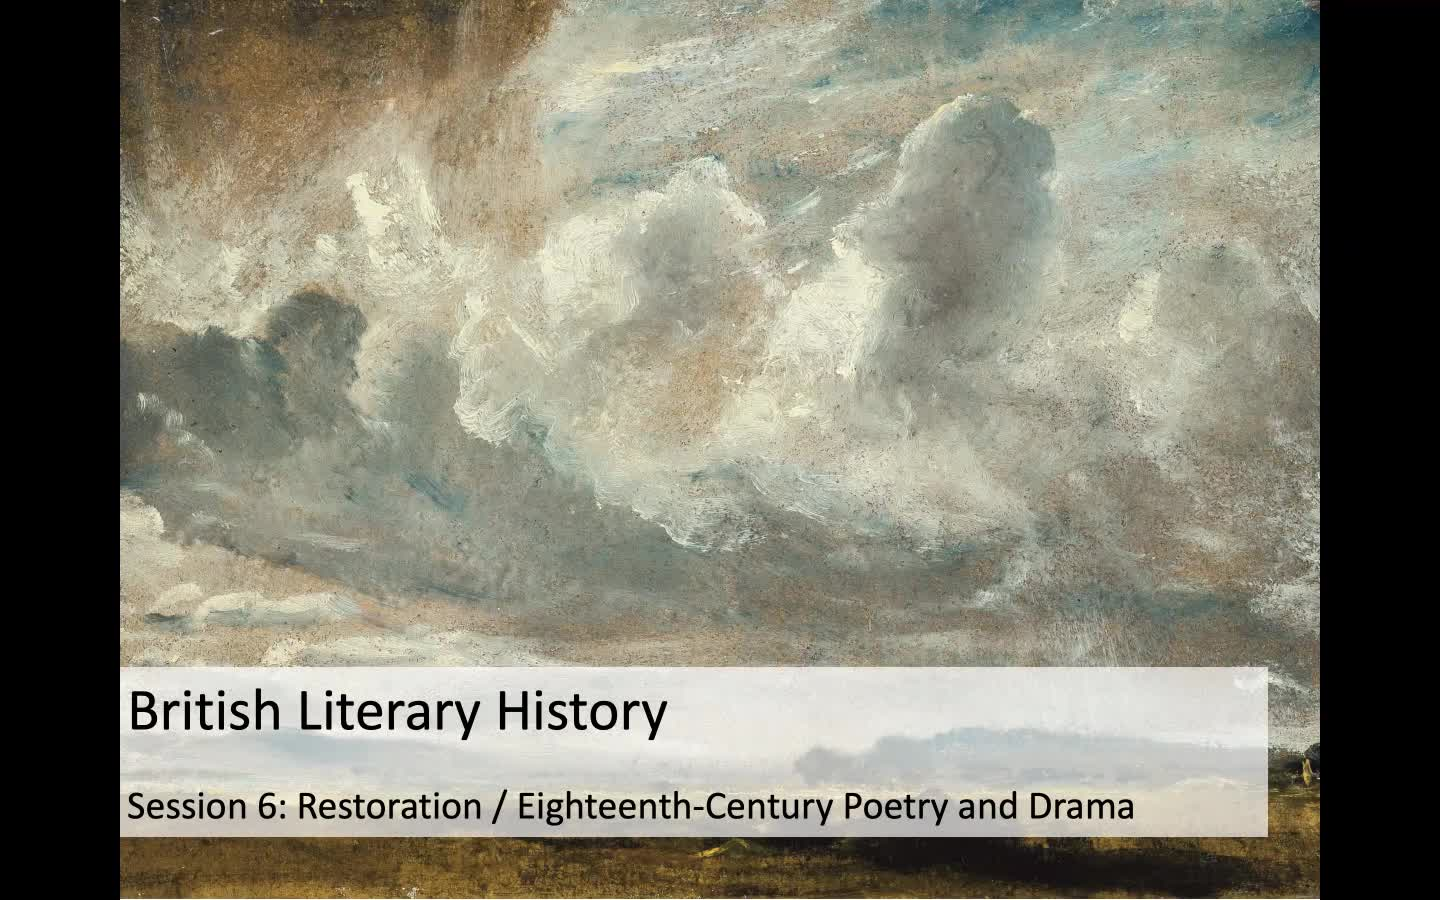 Week 6 - Restoration / C18th Poetry and Drama